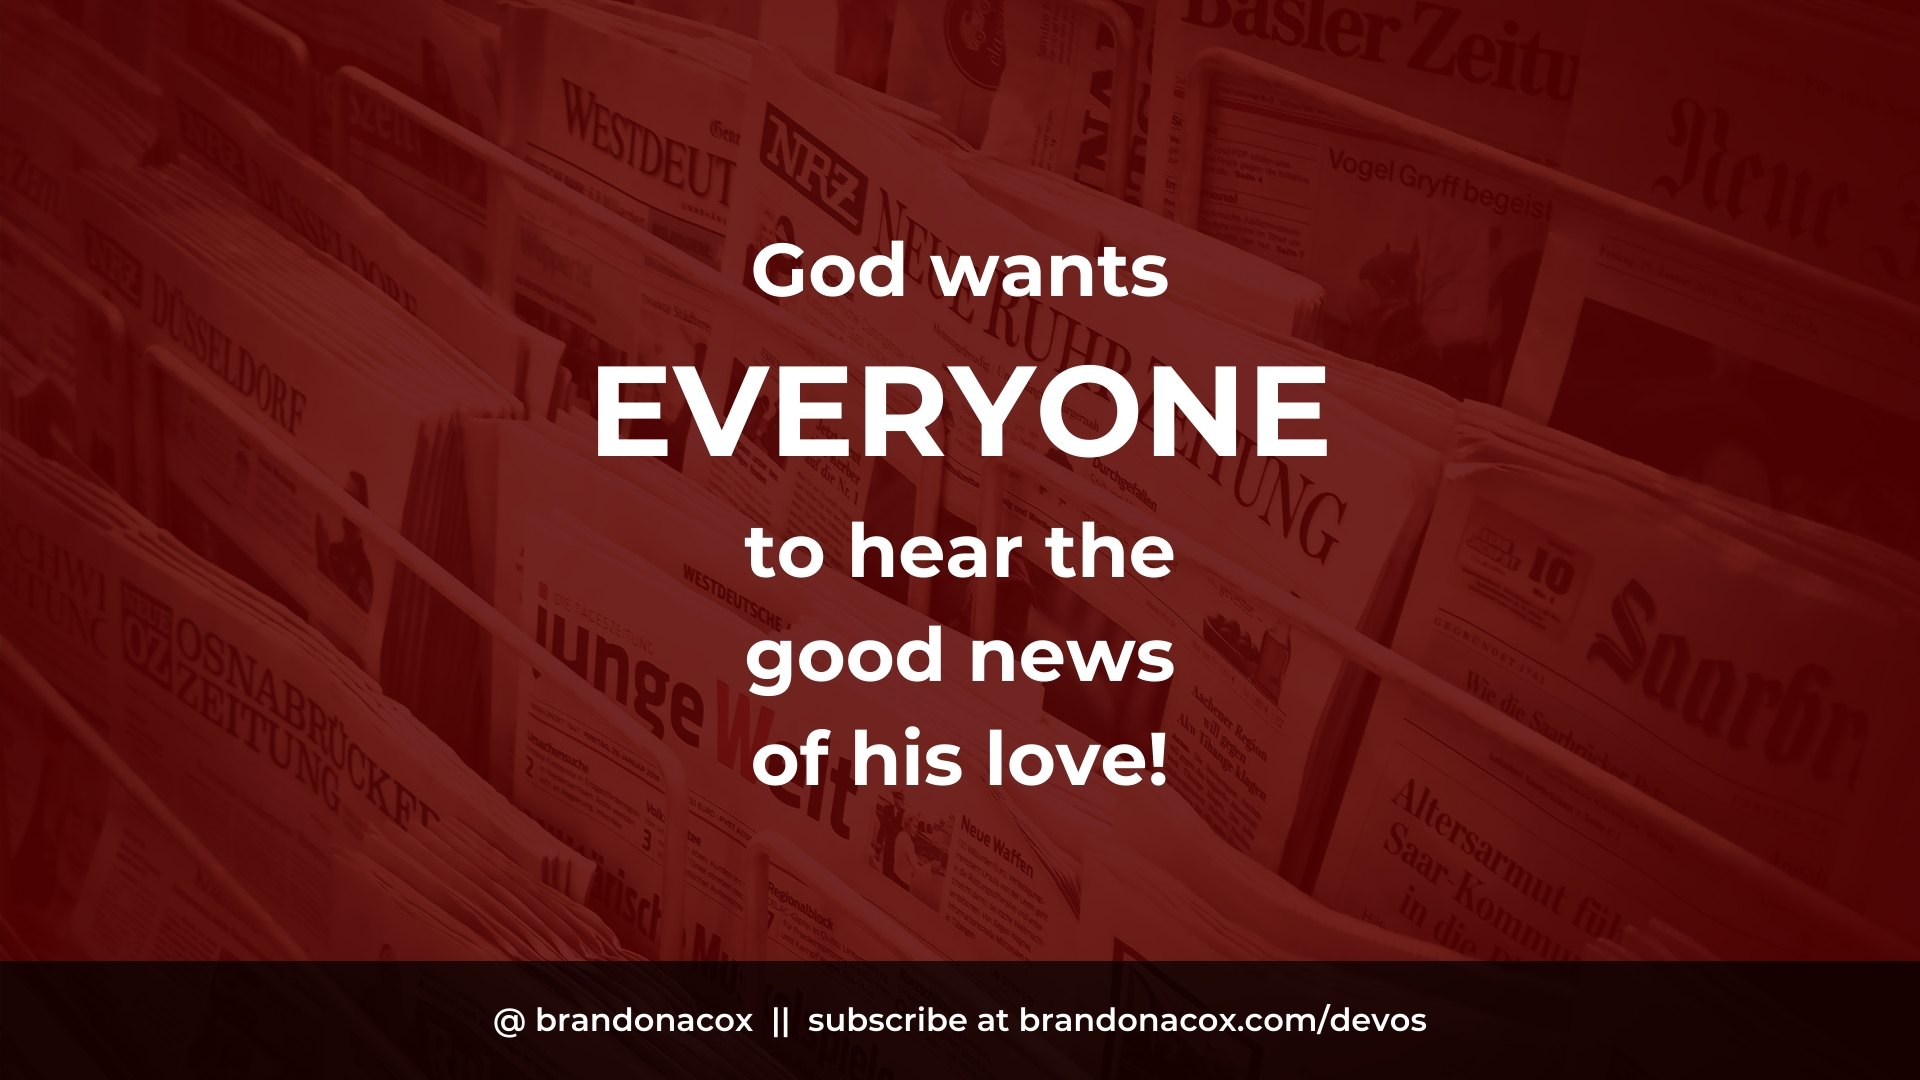 Hear Good News